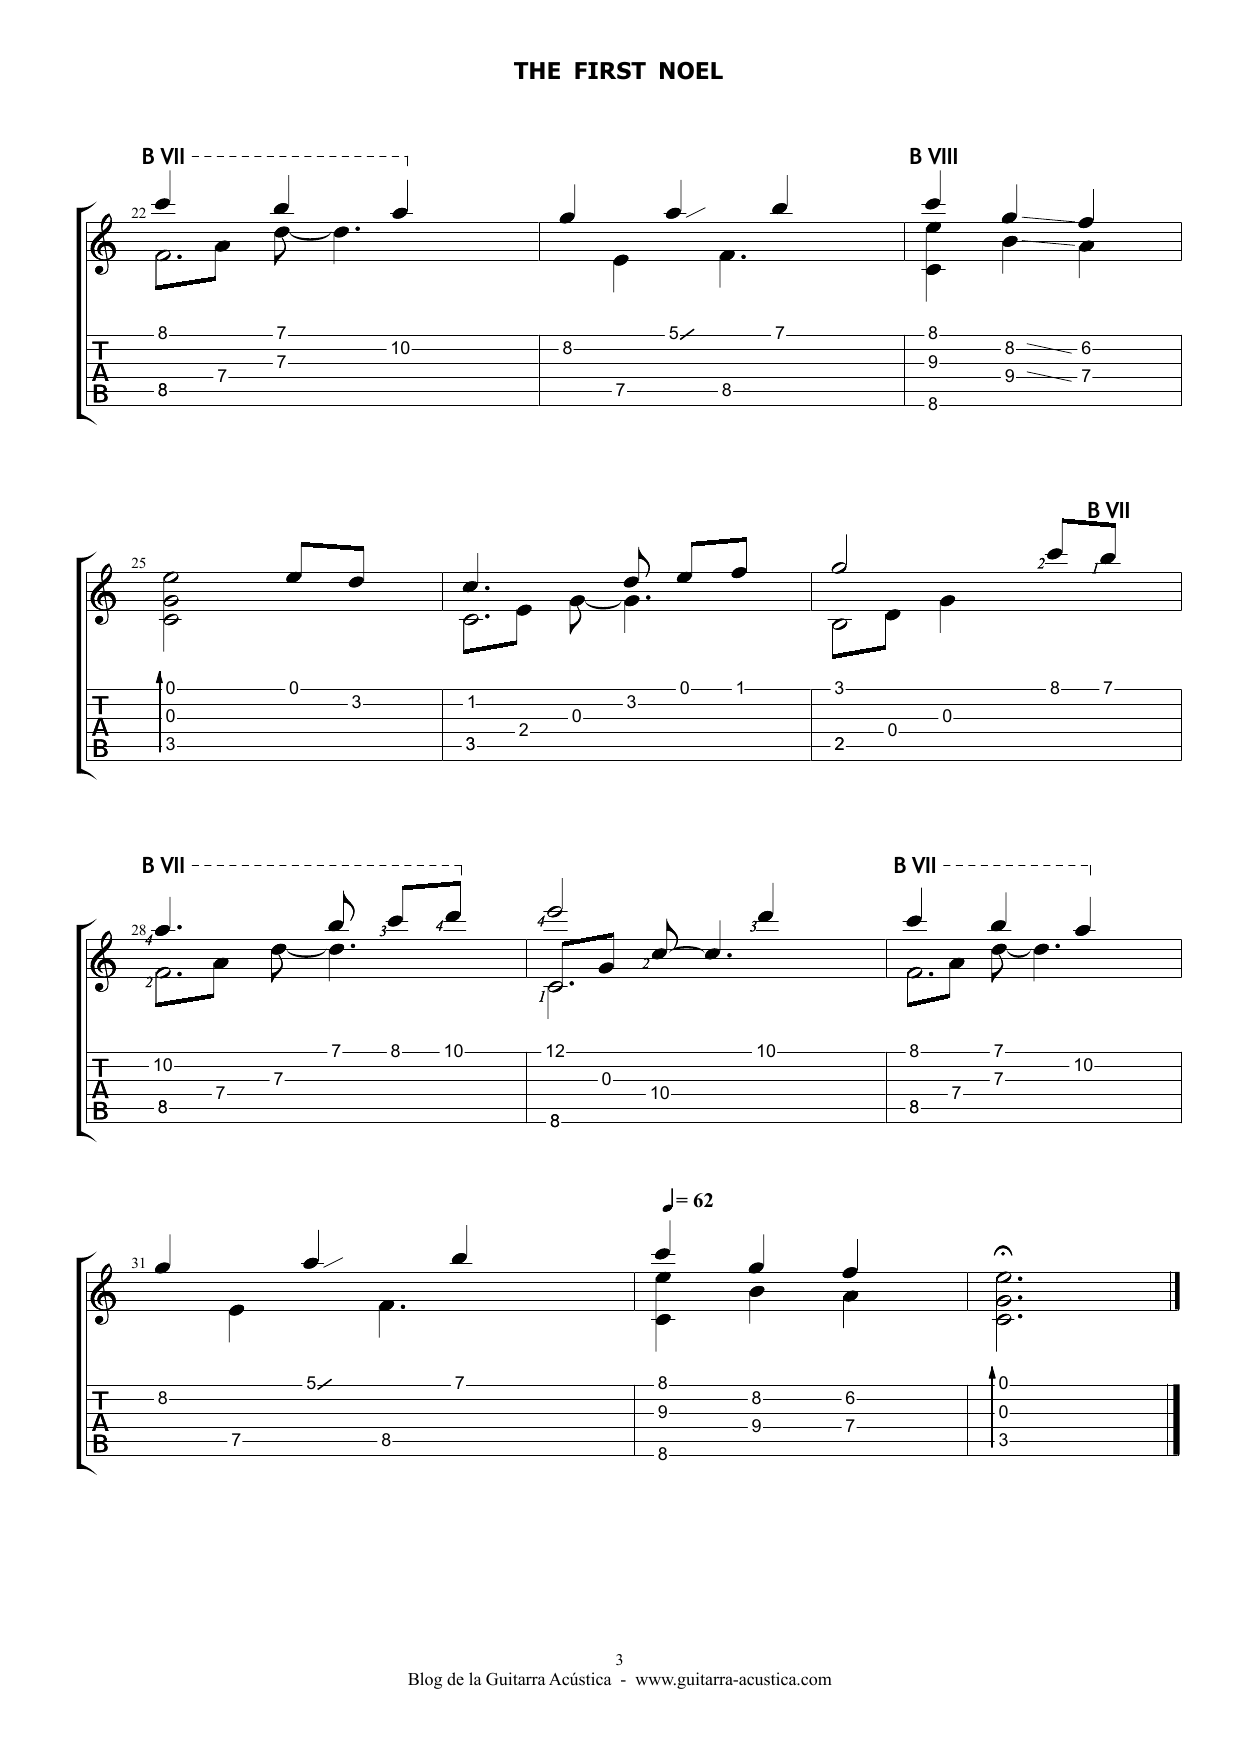 The first noel villancico partitura para guitarra el for Partituras guitarra clasica